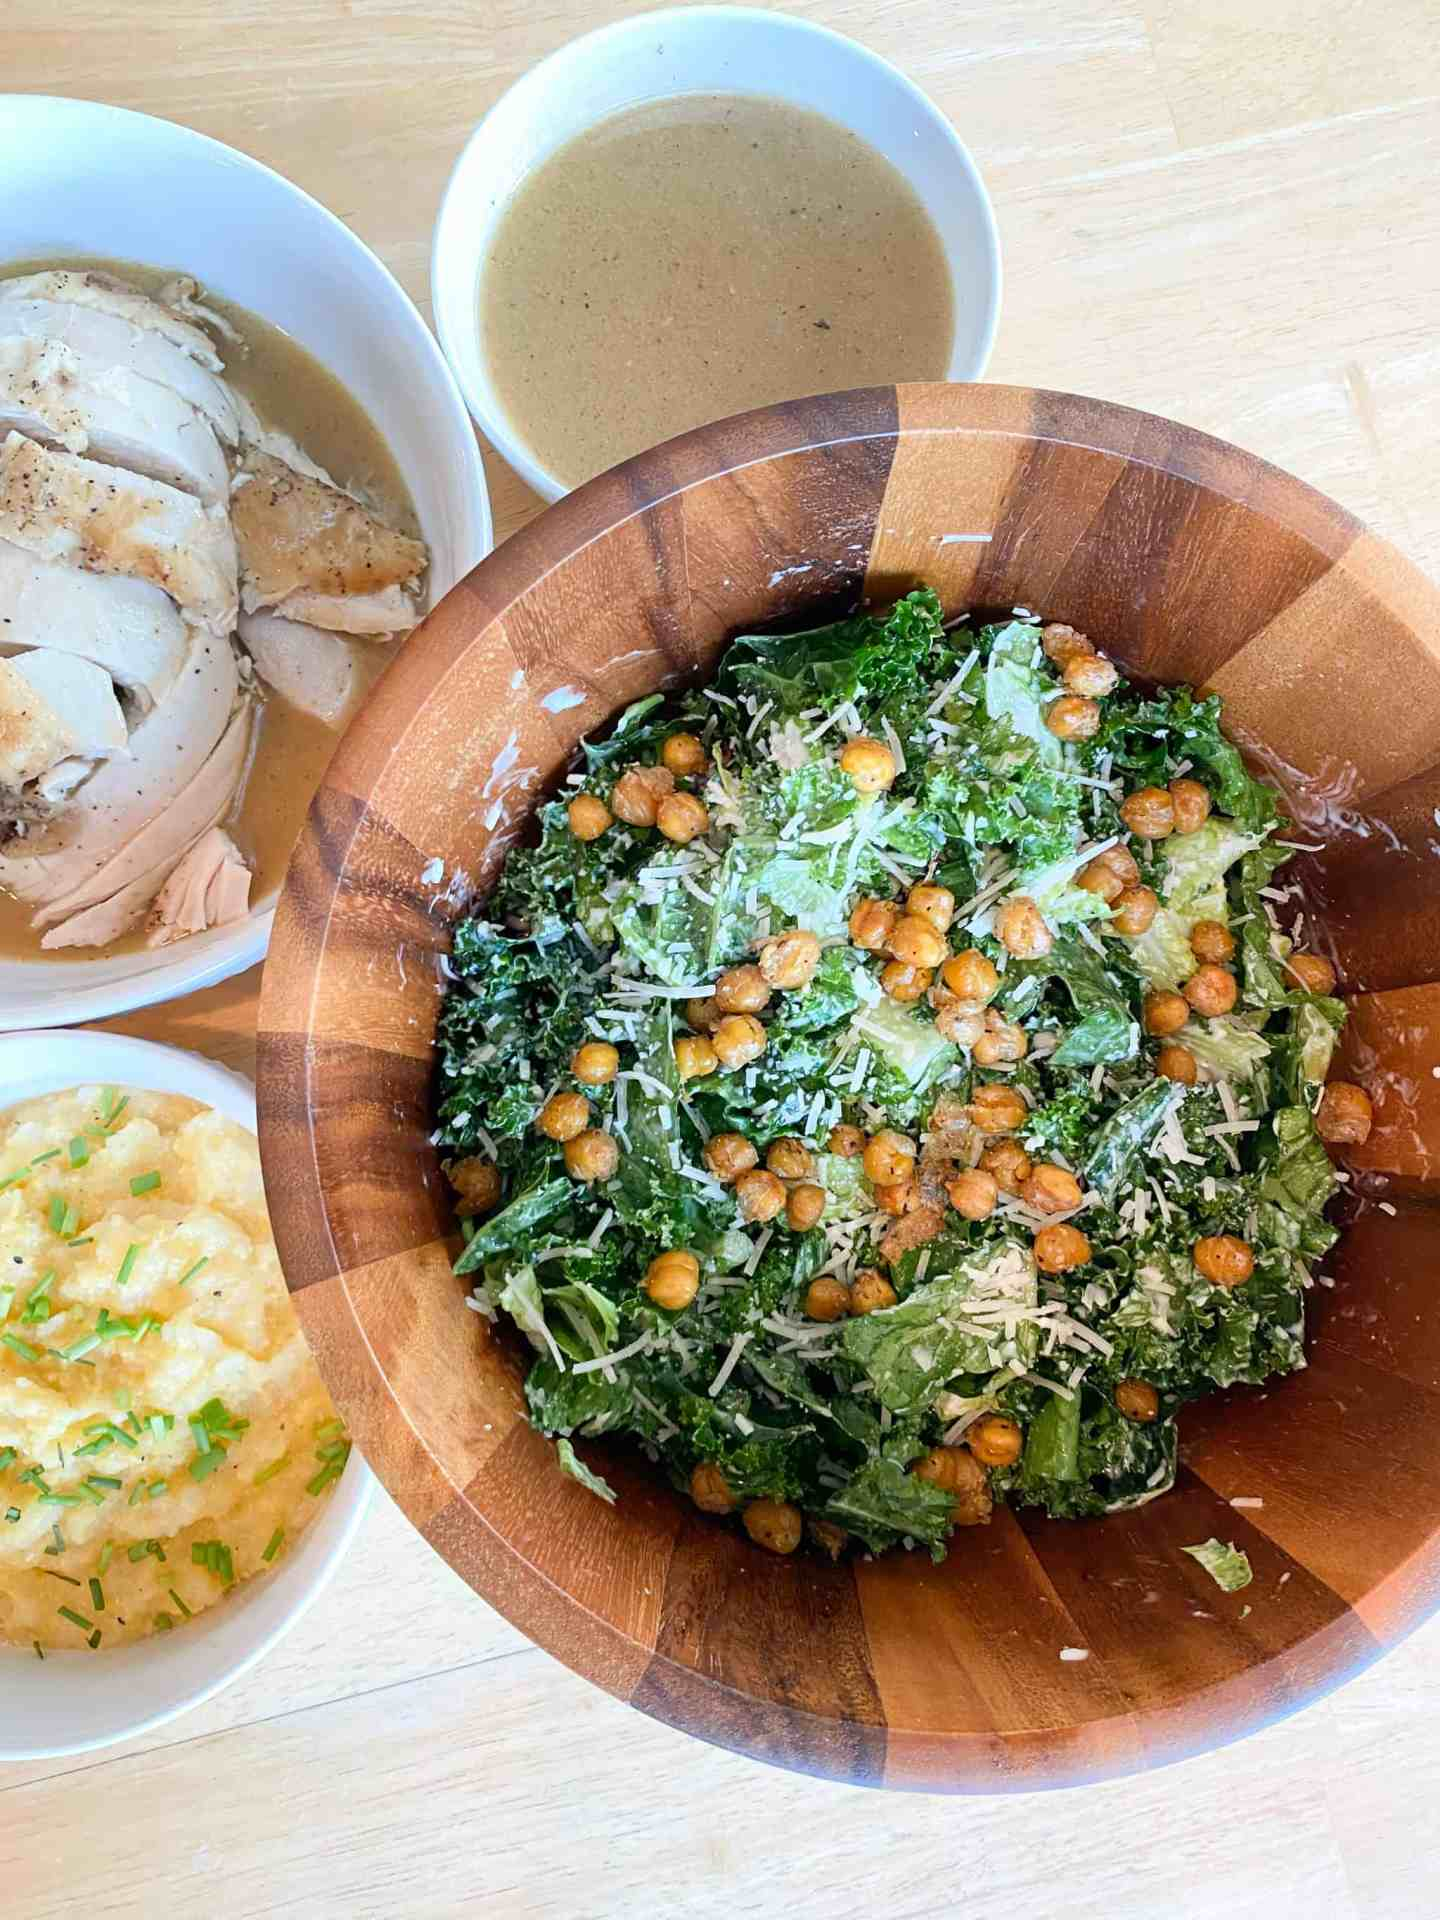 Kale-and-Romaine-Salad-Roasted-Chicken-and-Cheesy-Polenta